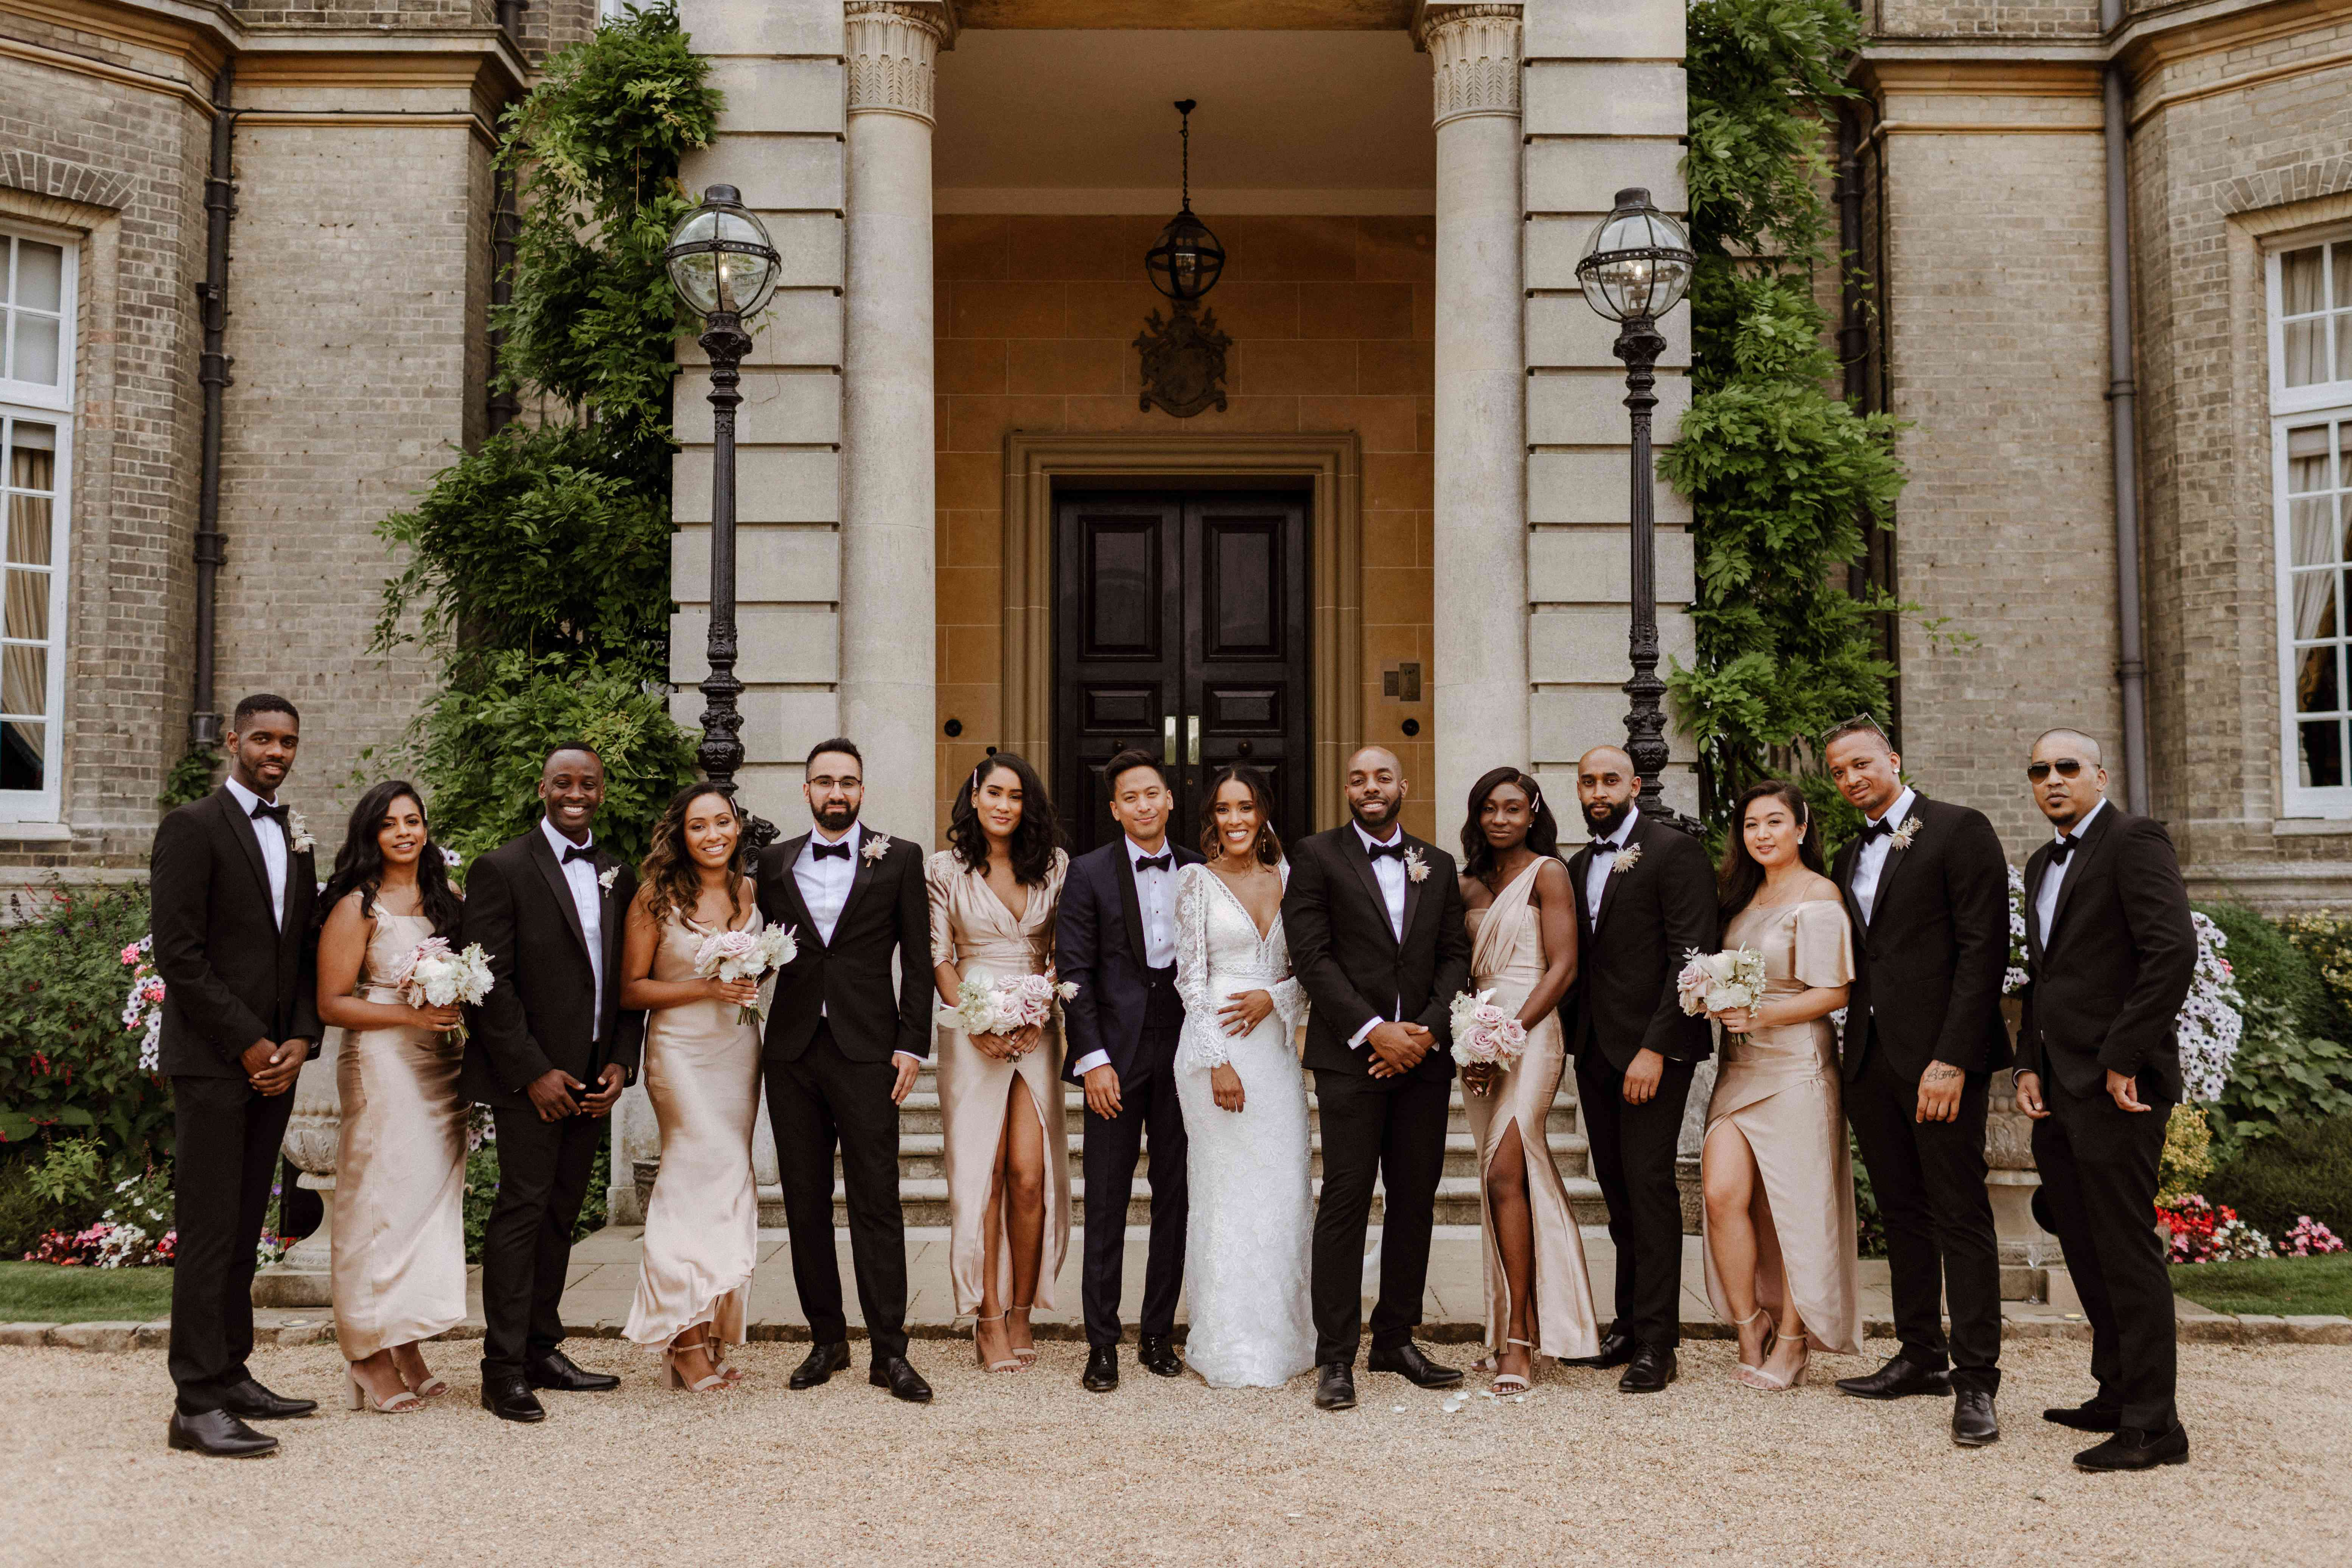 The bridal and grooms party